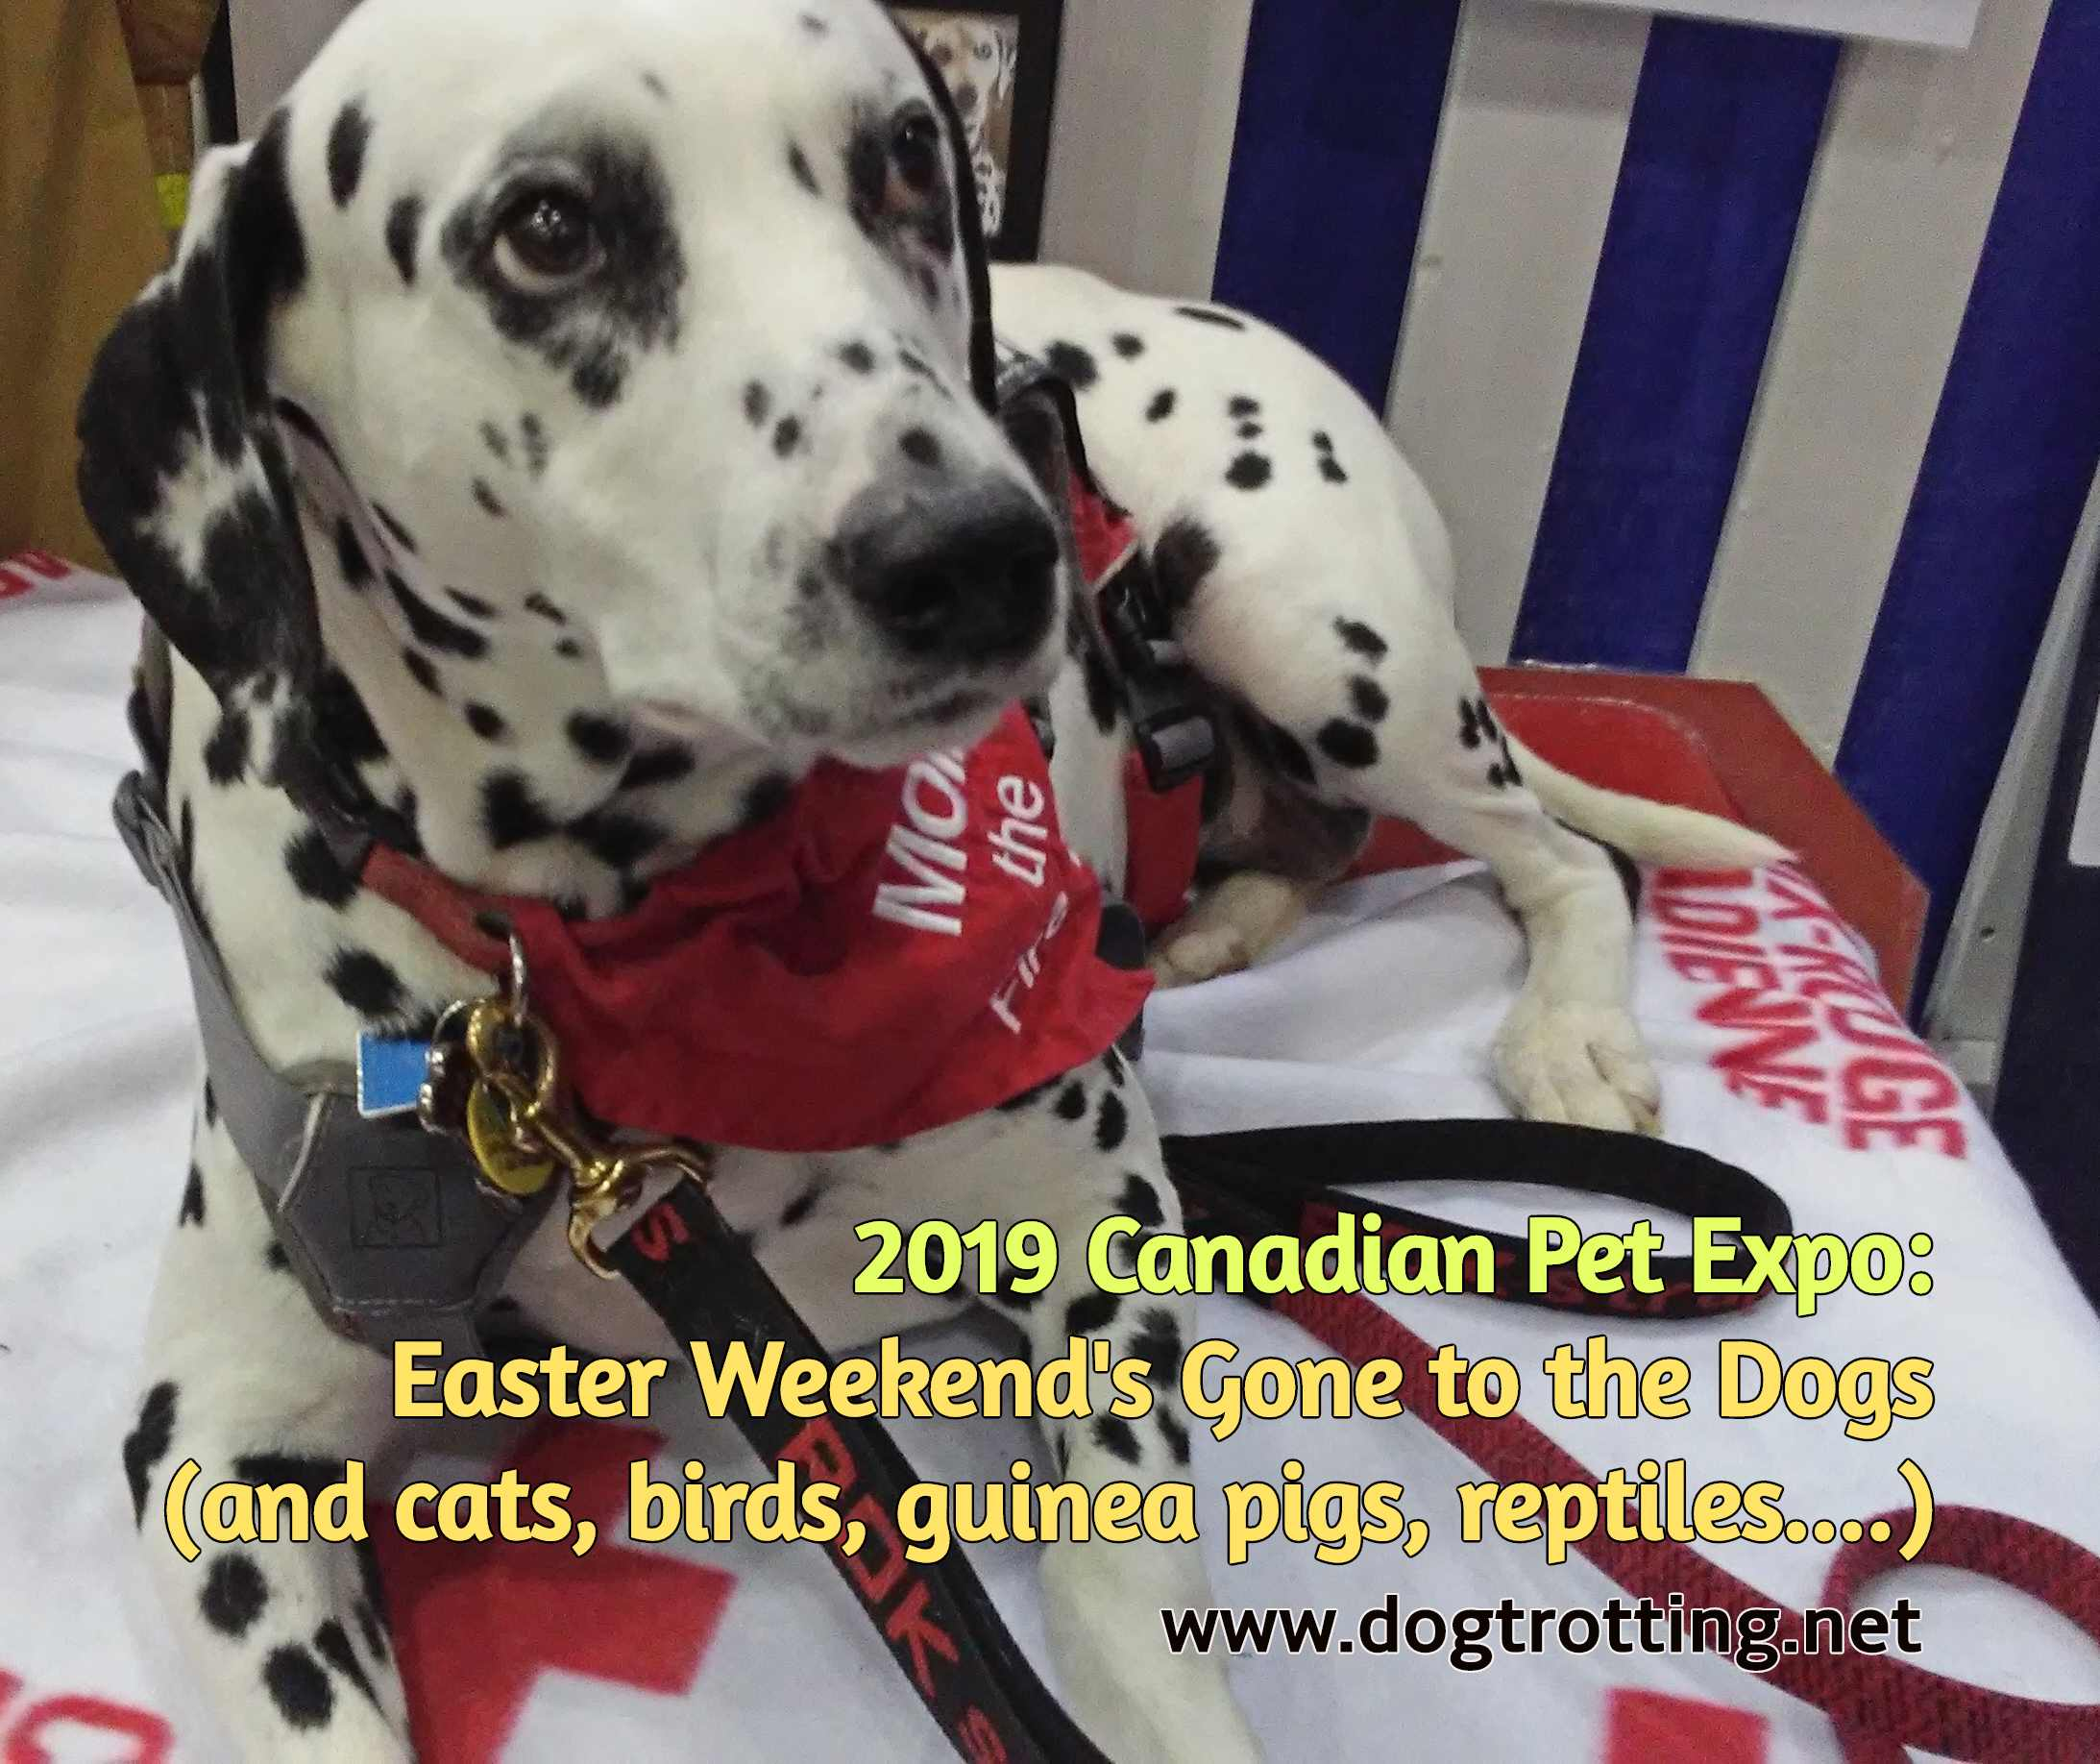 Dalmation firehouse dog at Canadian Pet Expo 2019